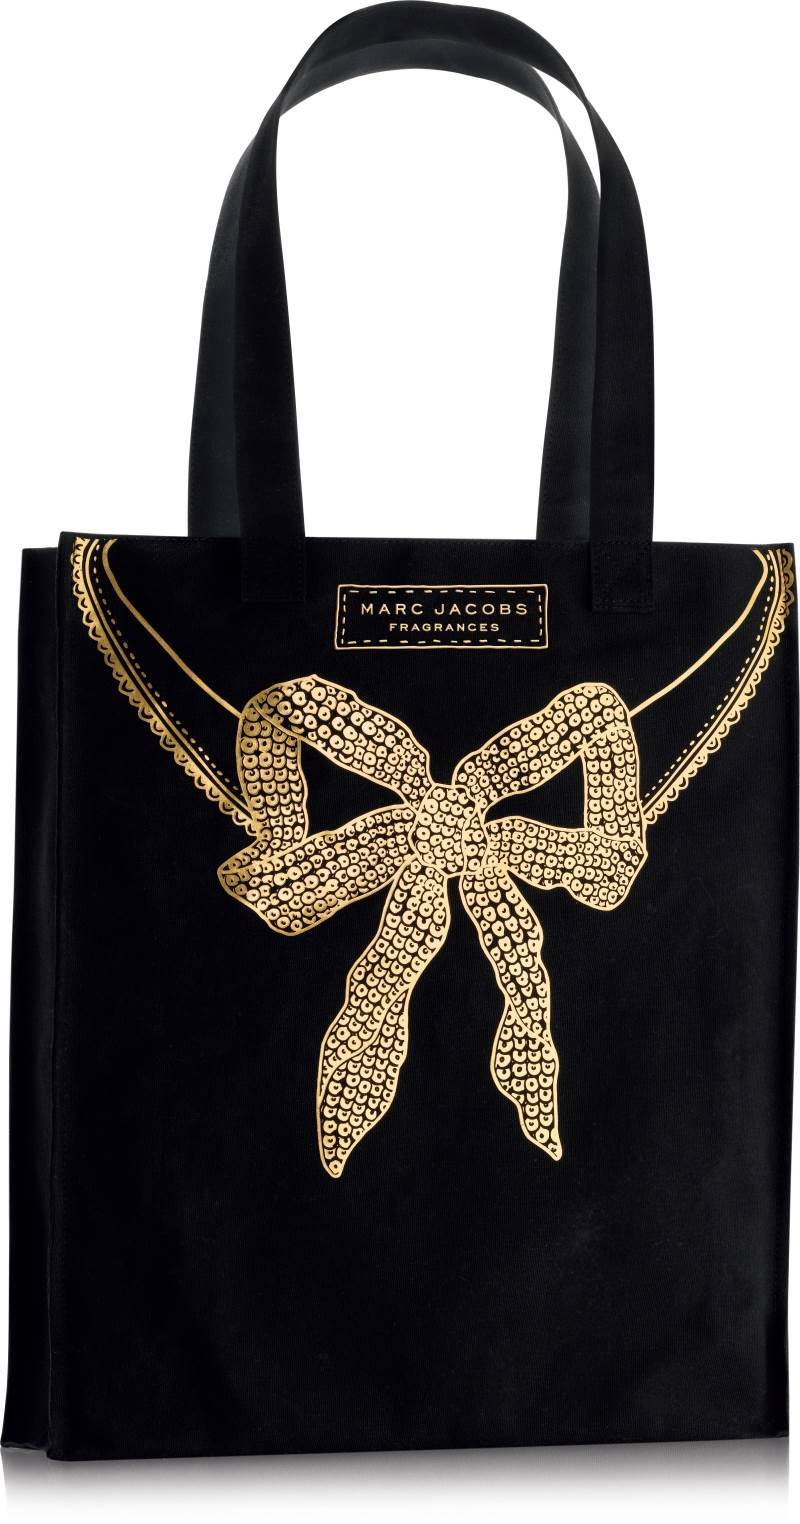 2faa4843be Marc Jacobs Gift With Purchase Winter 2015 Tote Bag | The Fragrance Shop